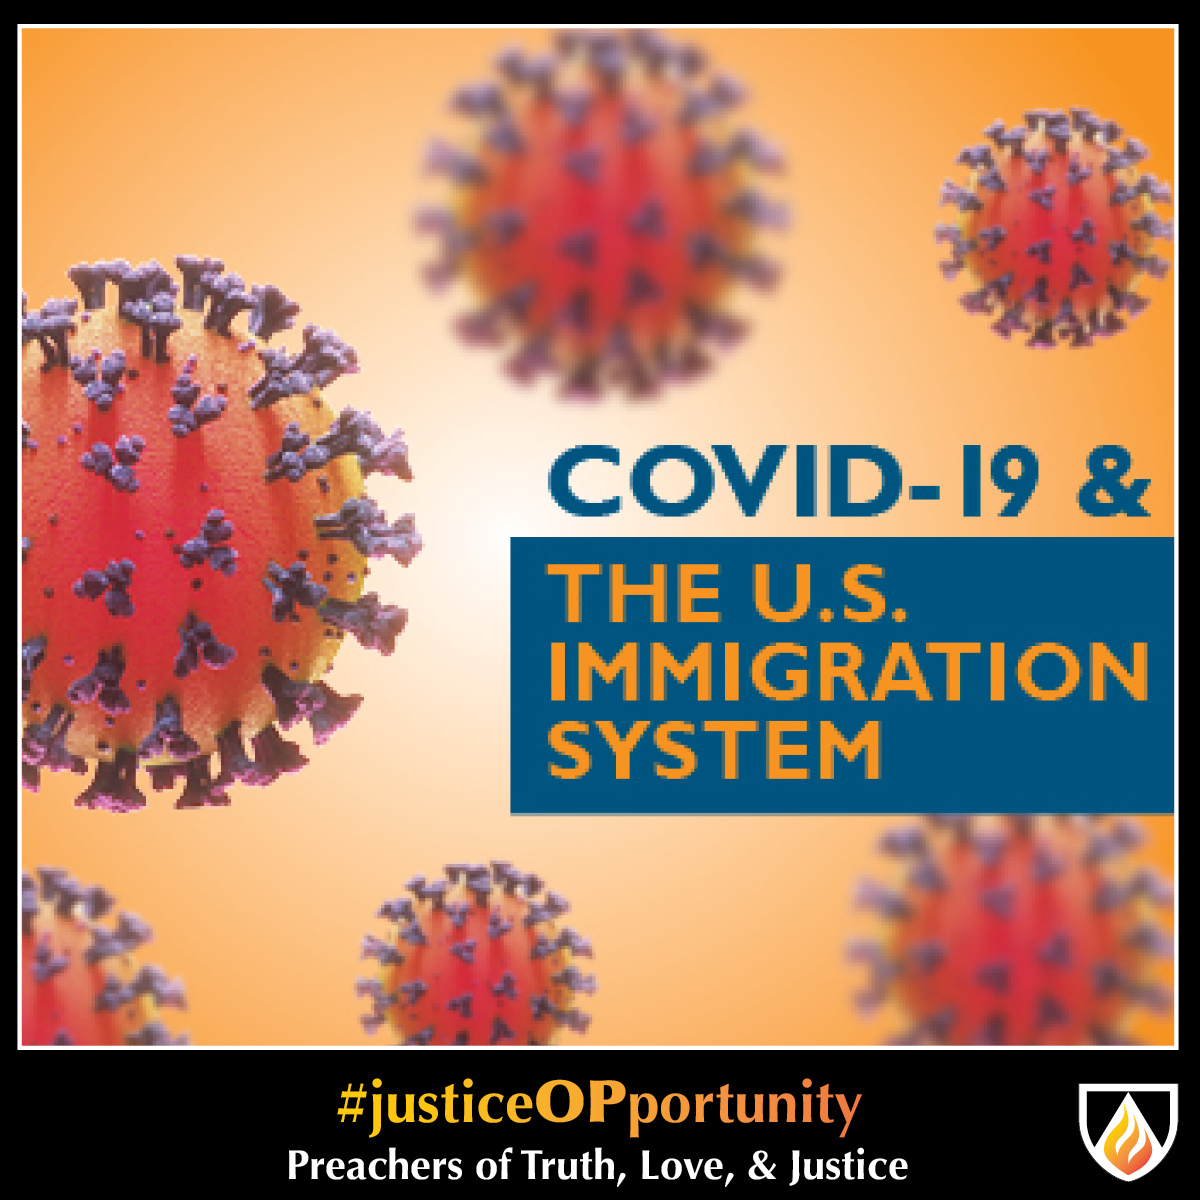 #justiceOPportunity Thursday: April 16, 2020